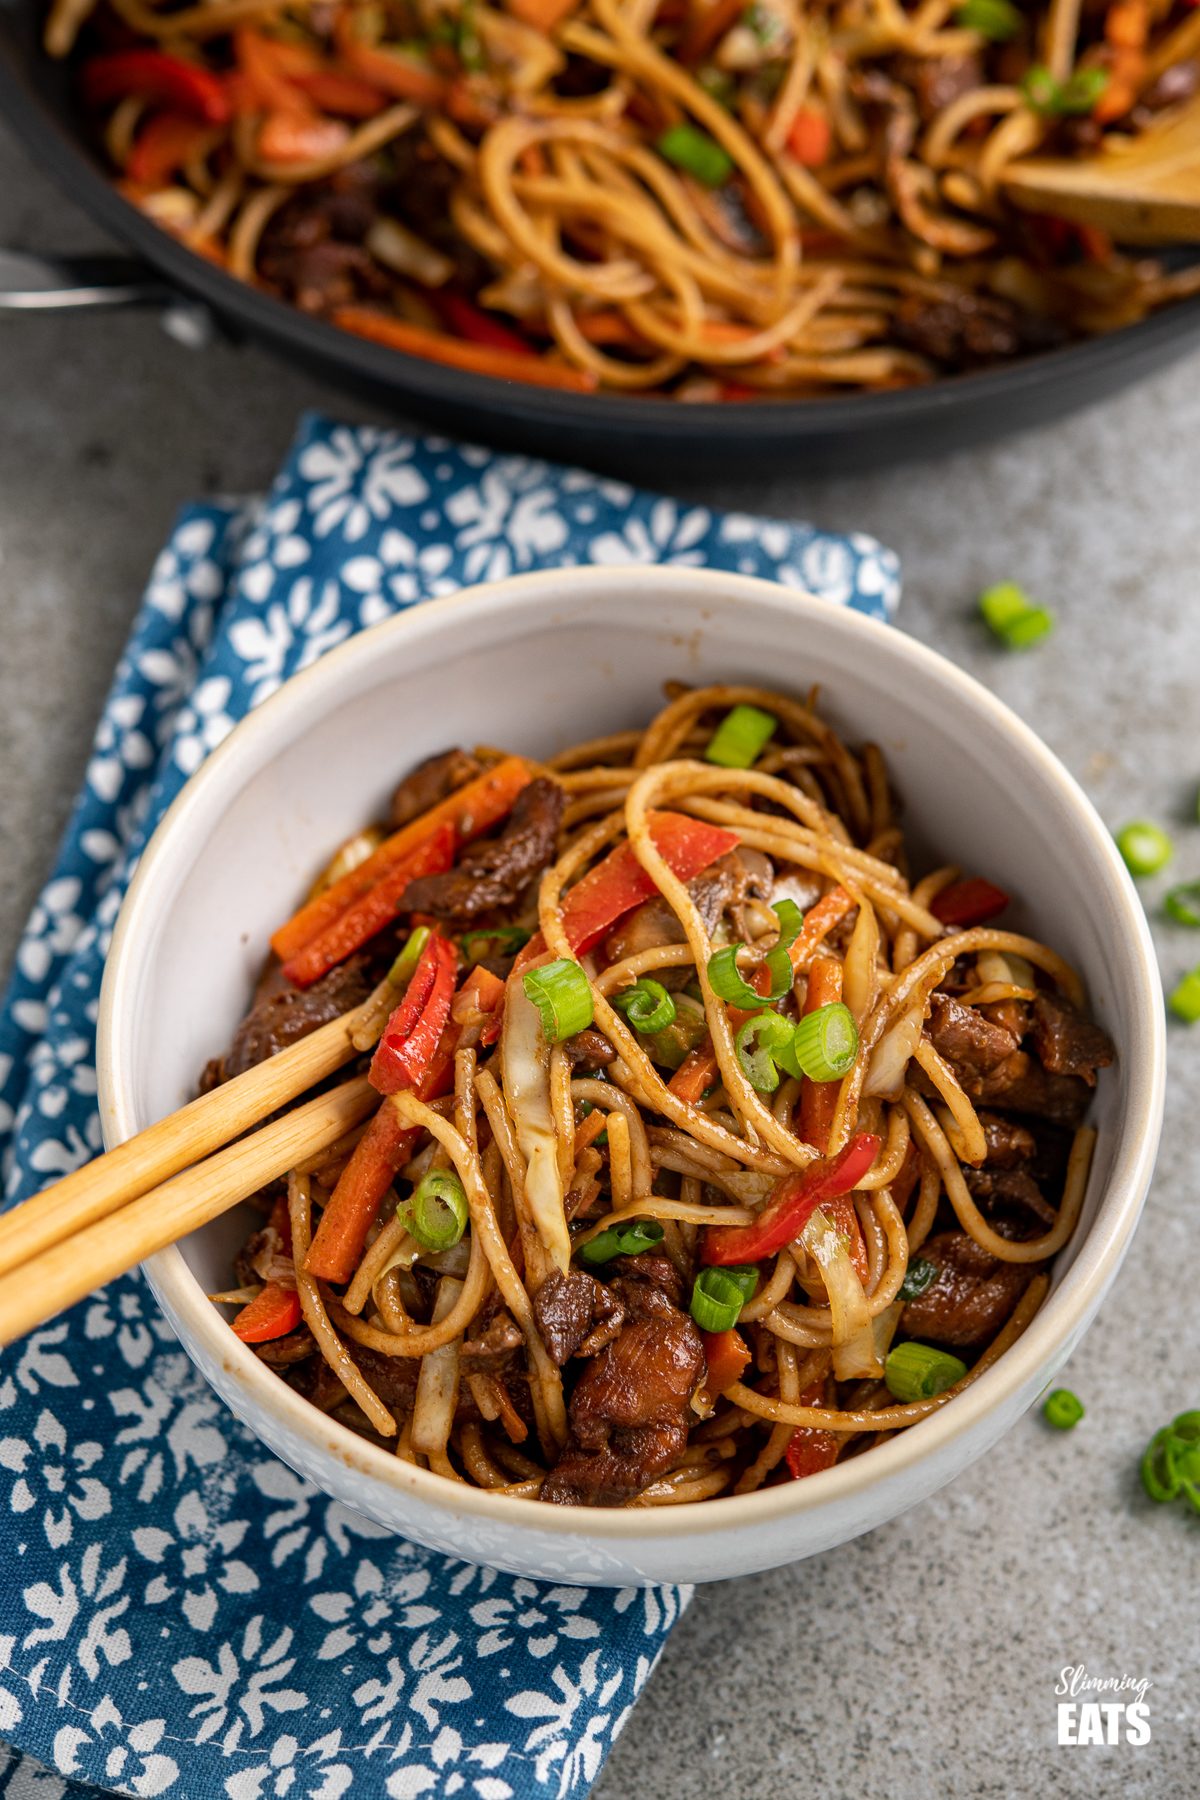 chicken with noodles and vegetables in a white bowl with chopsticks